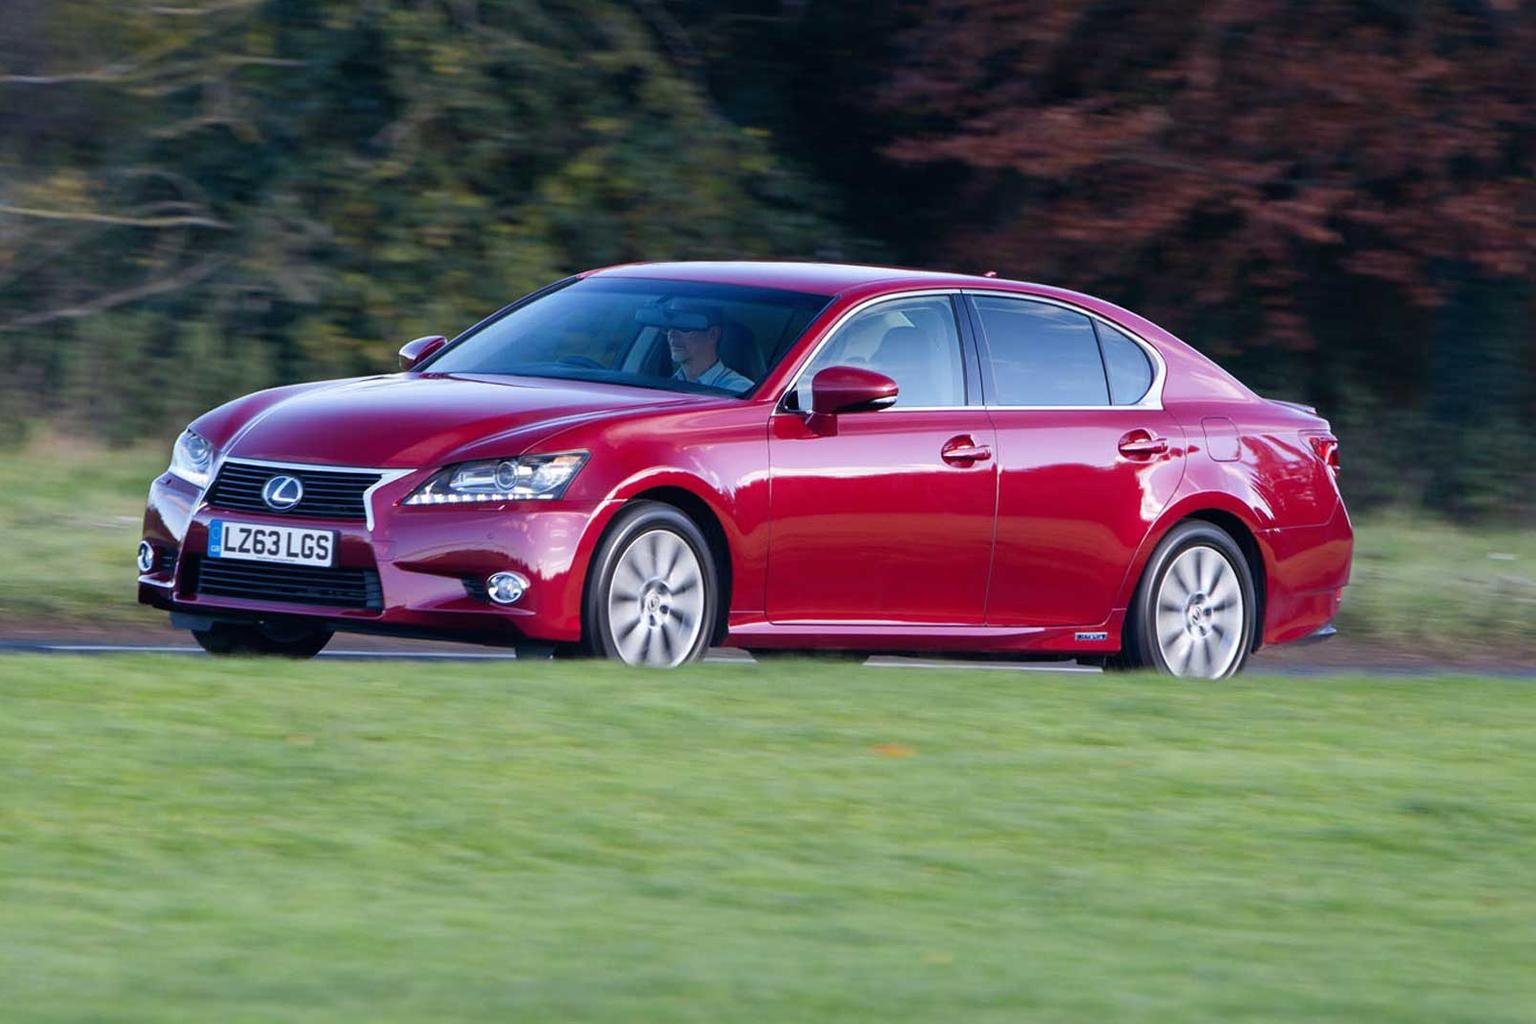 2014 Lexus GS300h first drive review